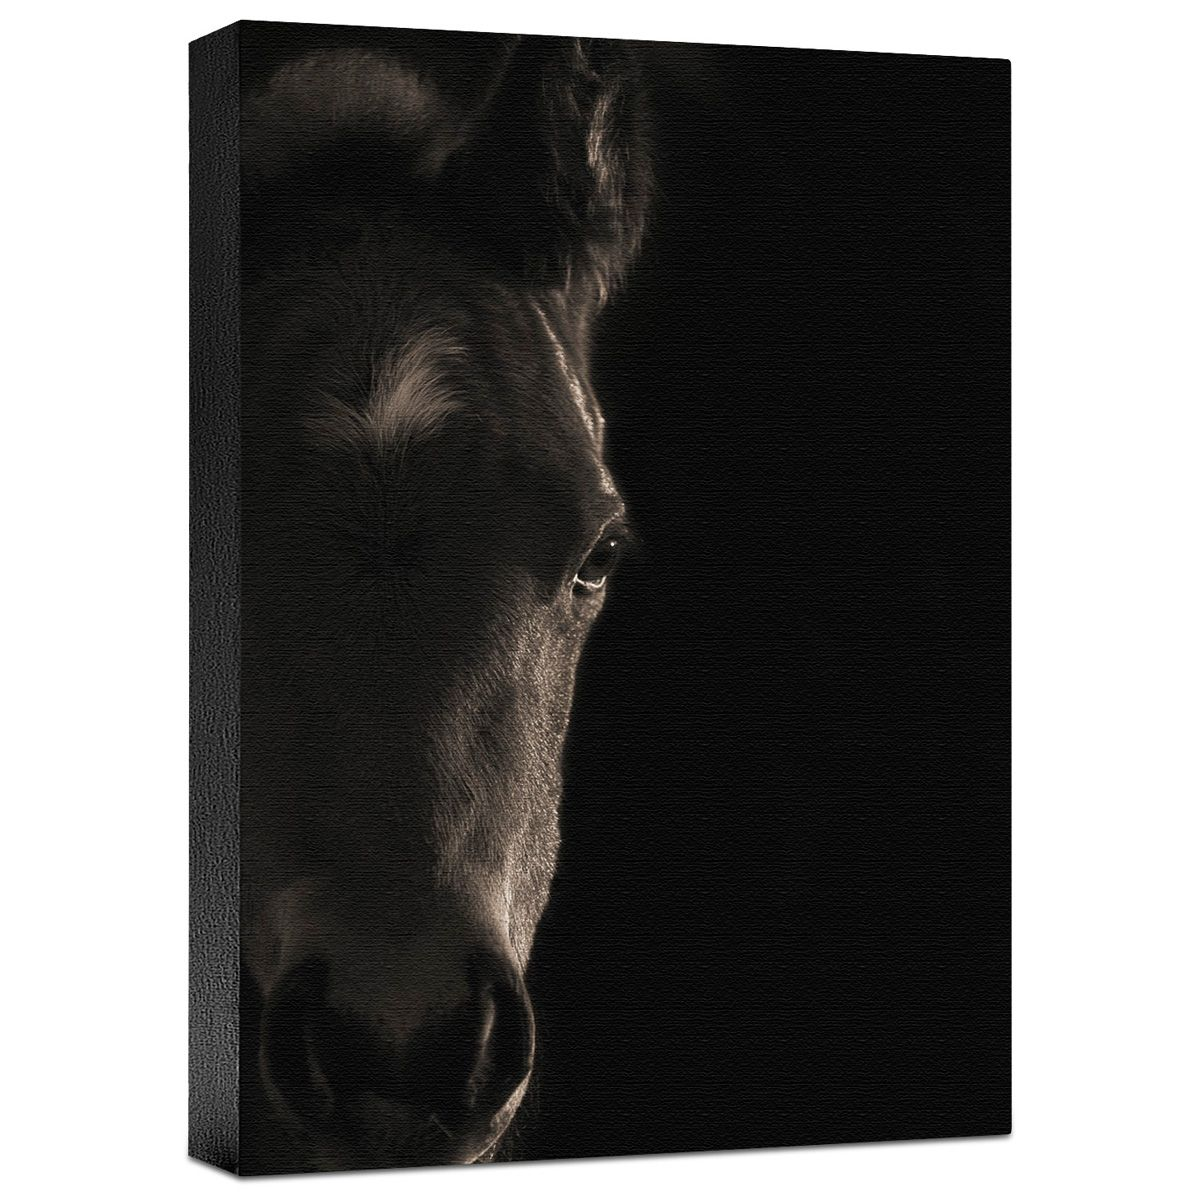 Look at Me Gallery Wrapped Canvas